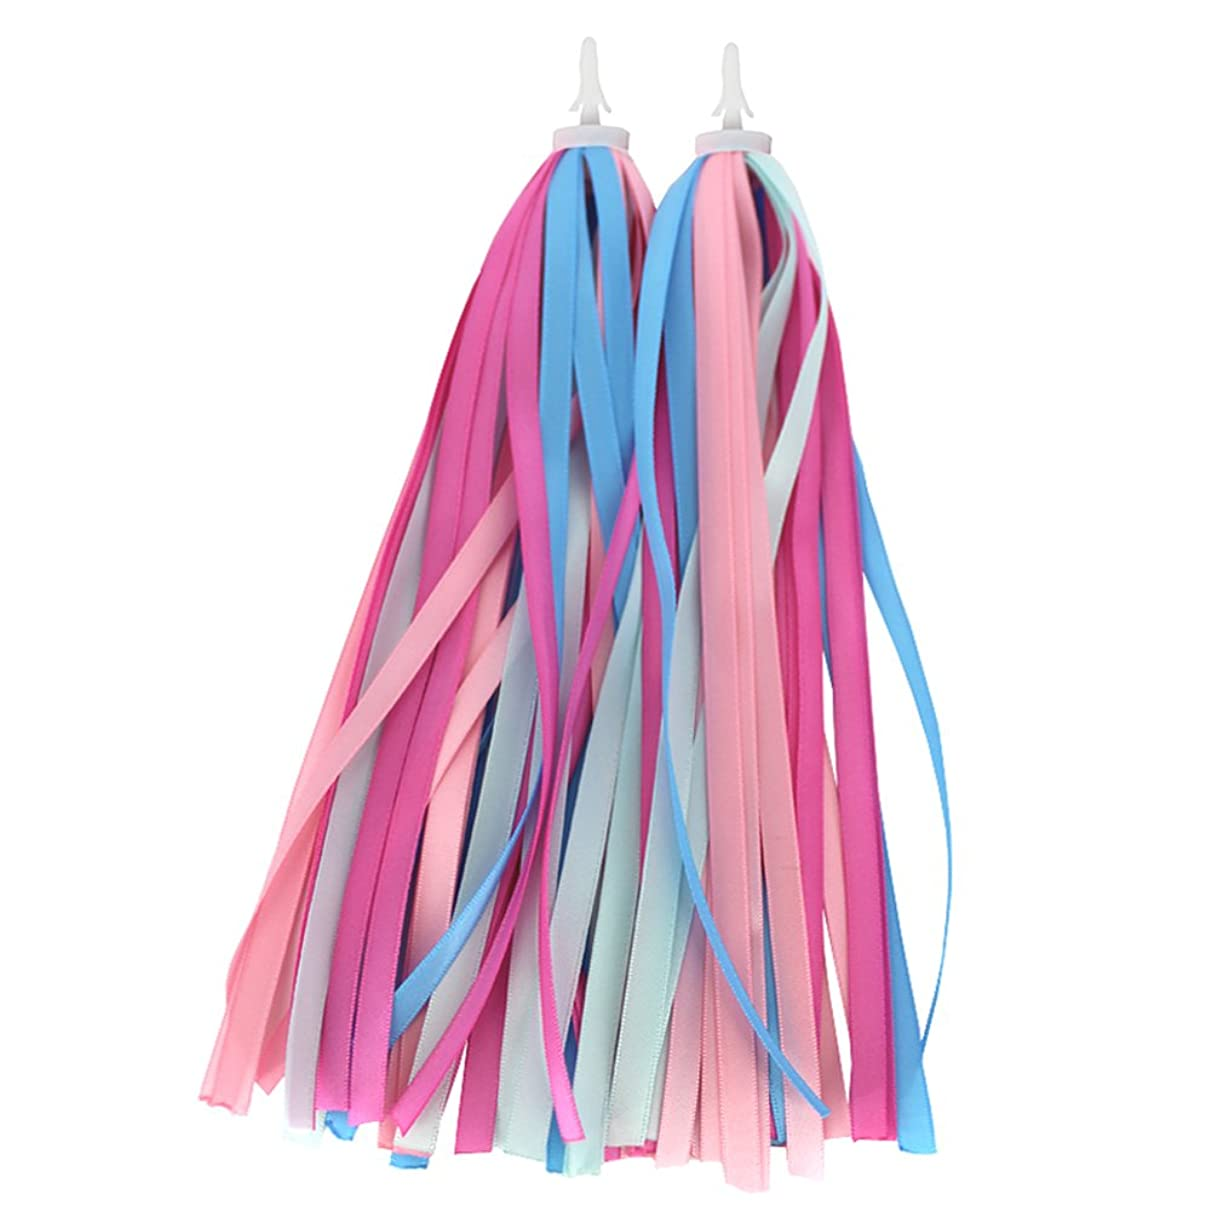 BESTCYC 1pair(2pcs) 25cm Kid's Bike Scooter Handlebar Colourful Polyester Streamers Bicycle Grips Colorful Ribbons Tassel Baby Carrier Accessories